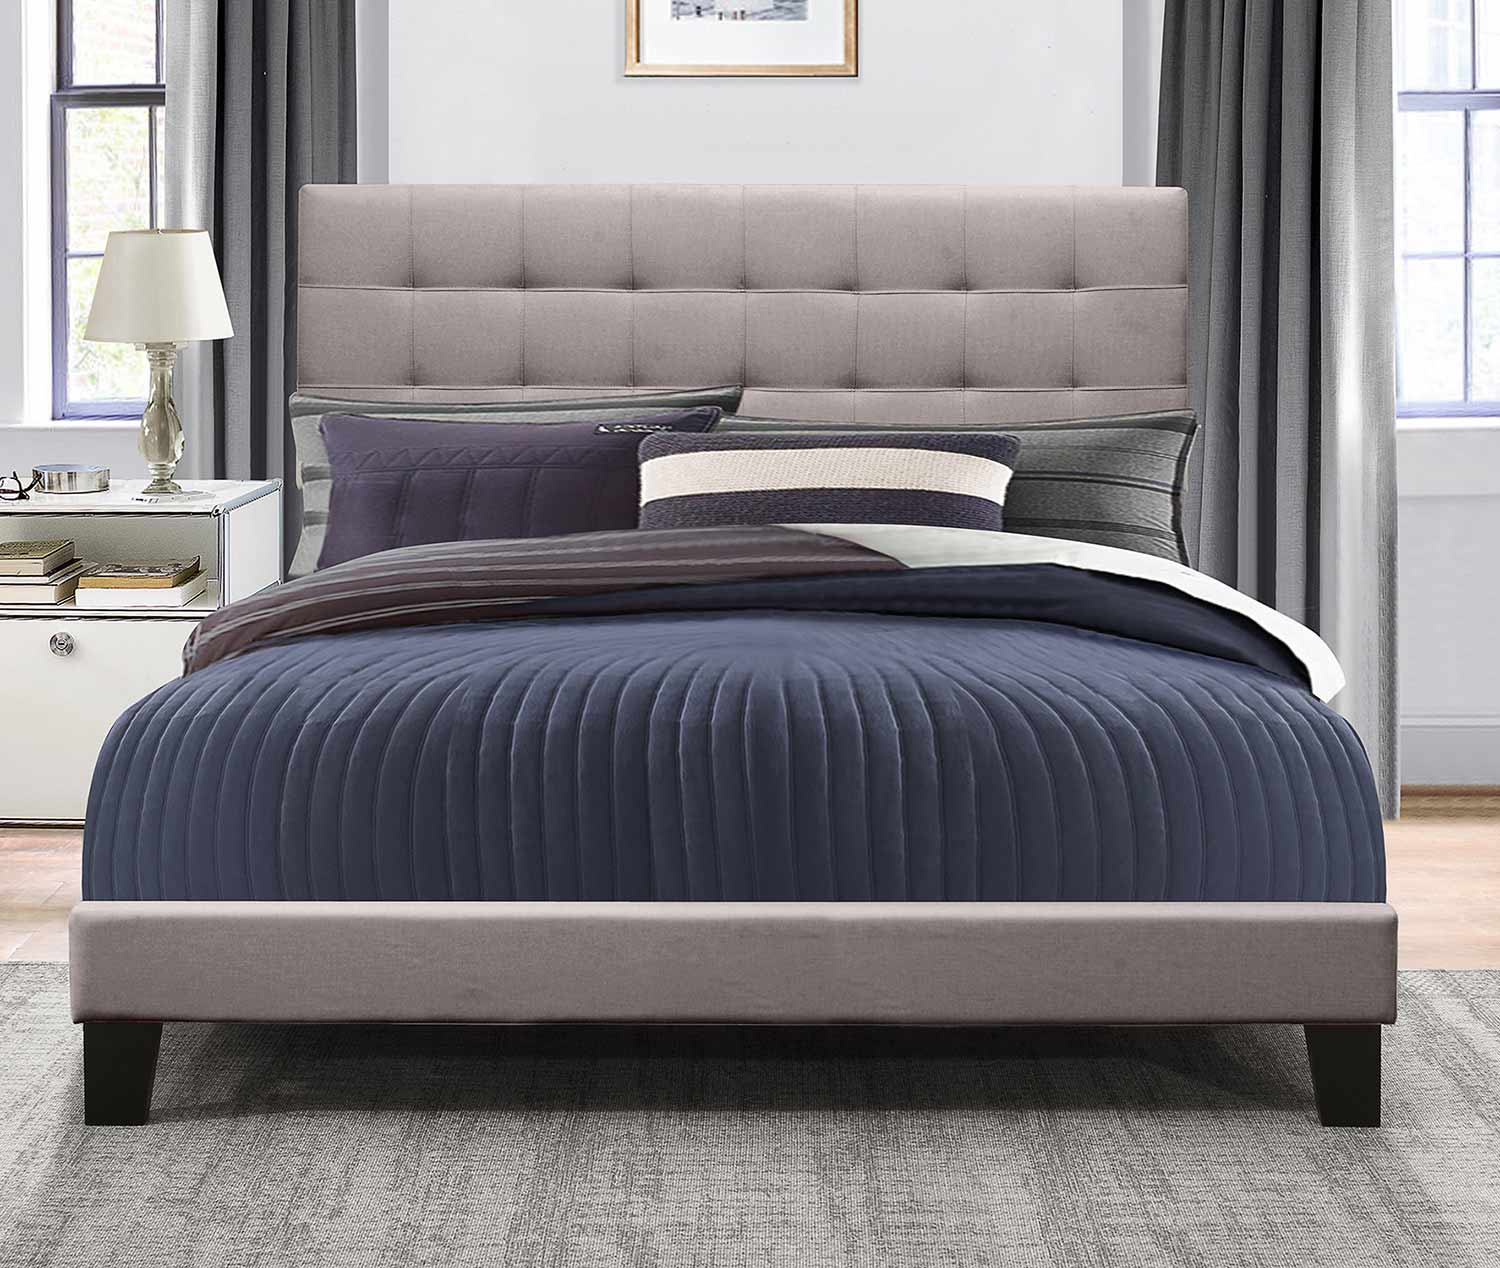 Hillsdale Delaney Bed - Stone